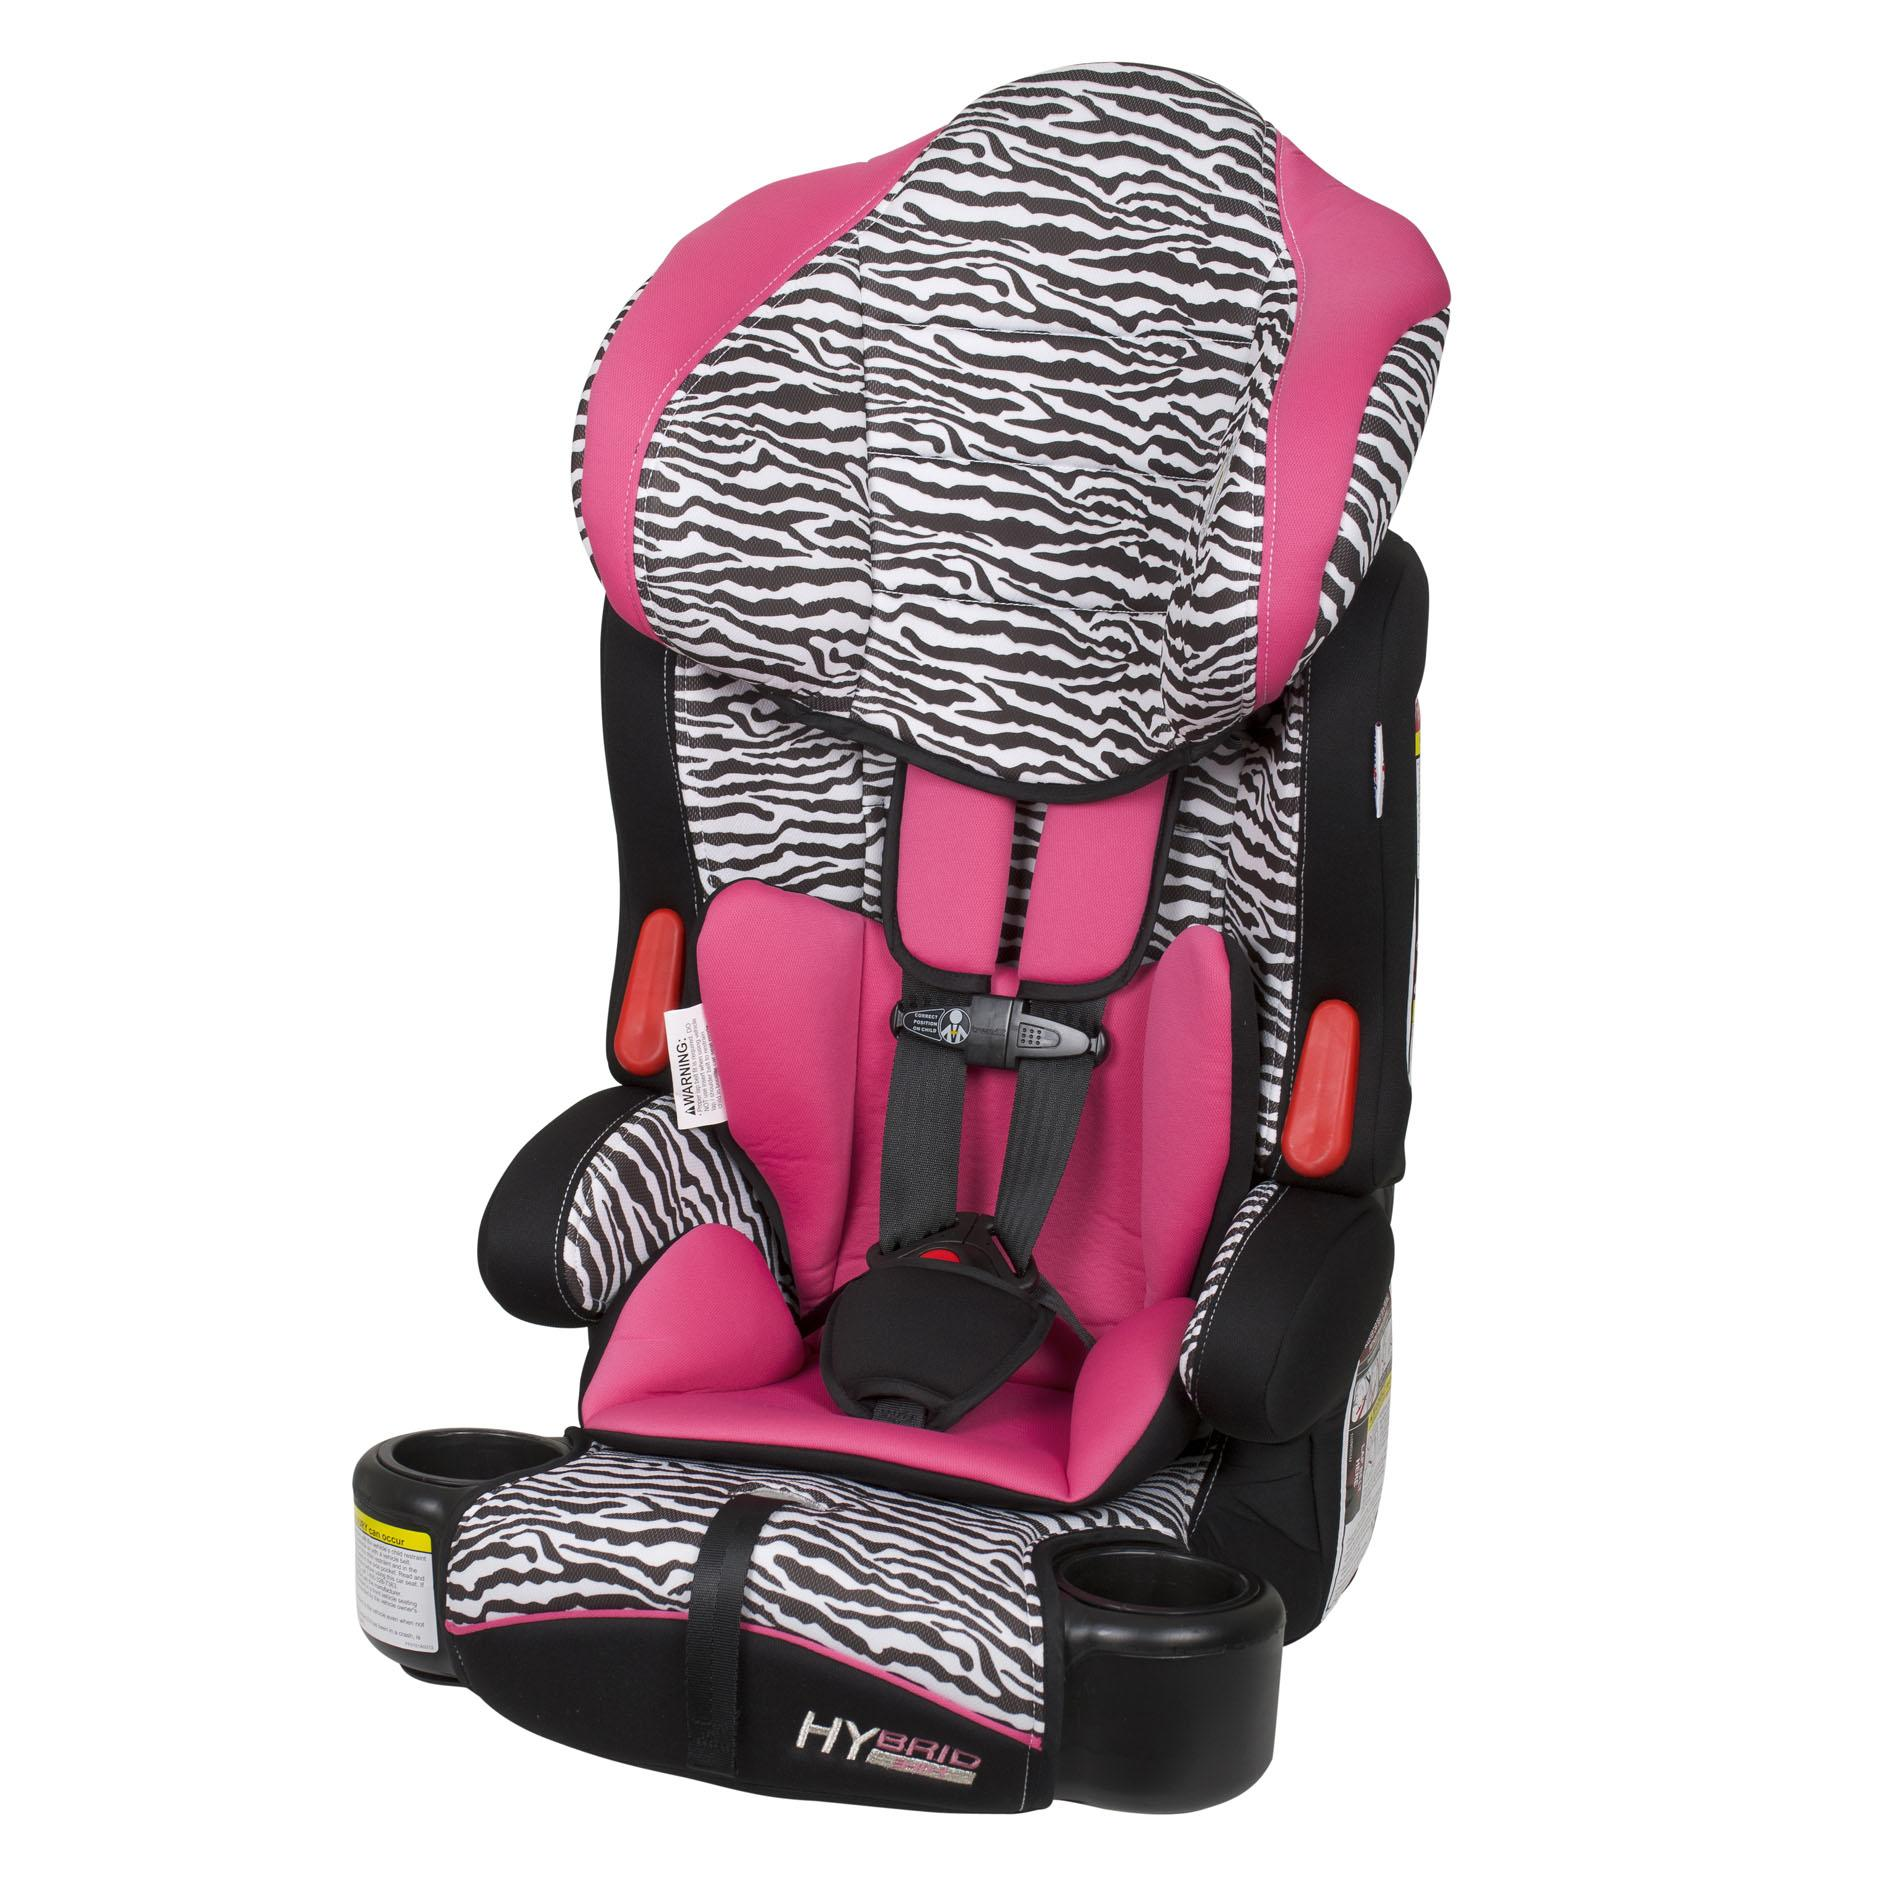 Hybrid 3-in-1 Booster Car Seat 22-100 Lbs.